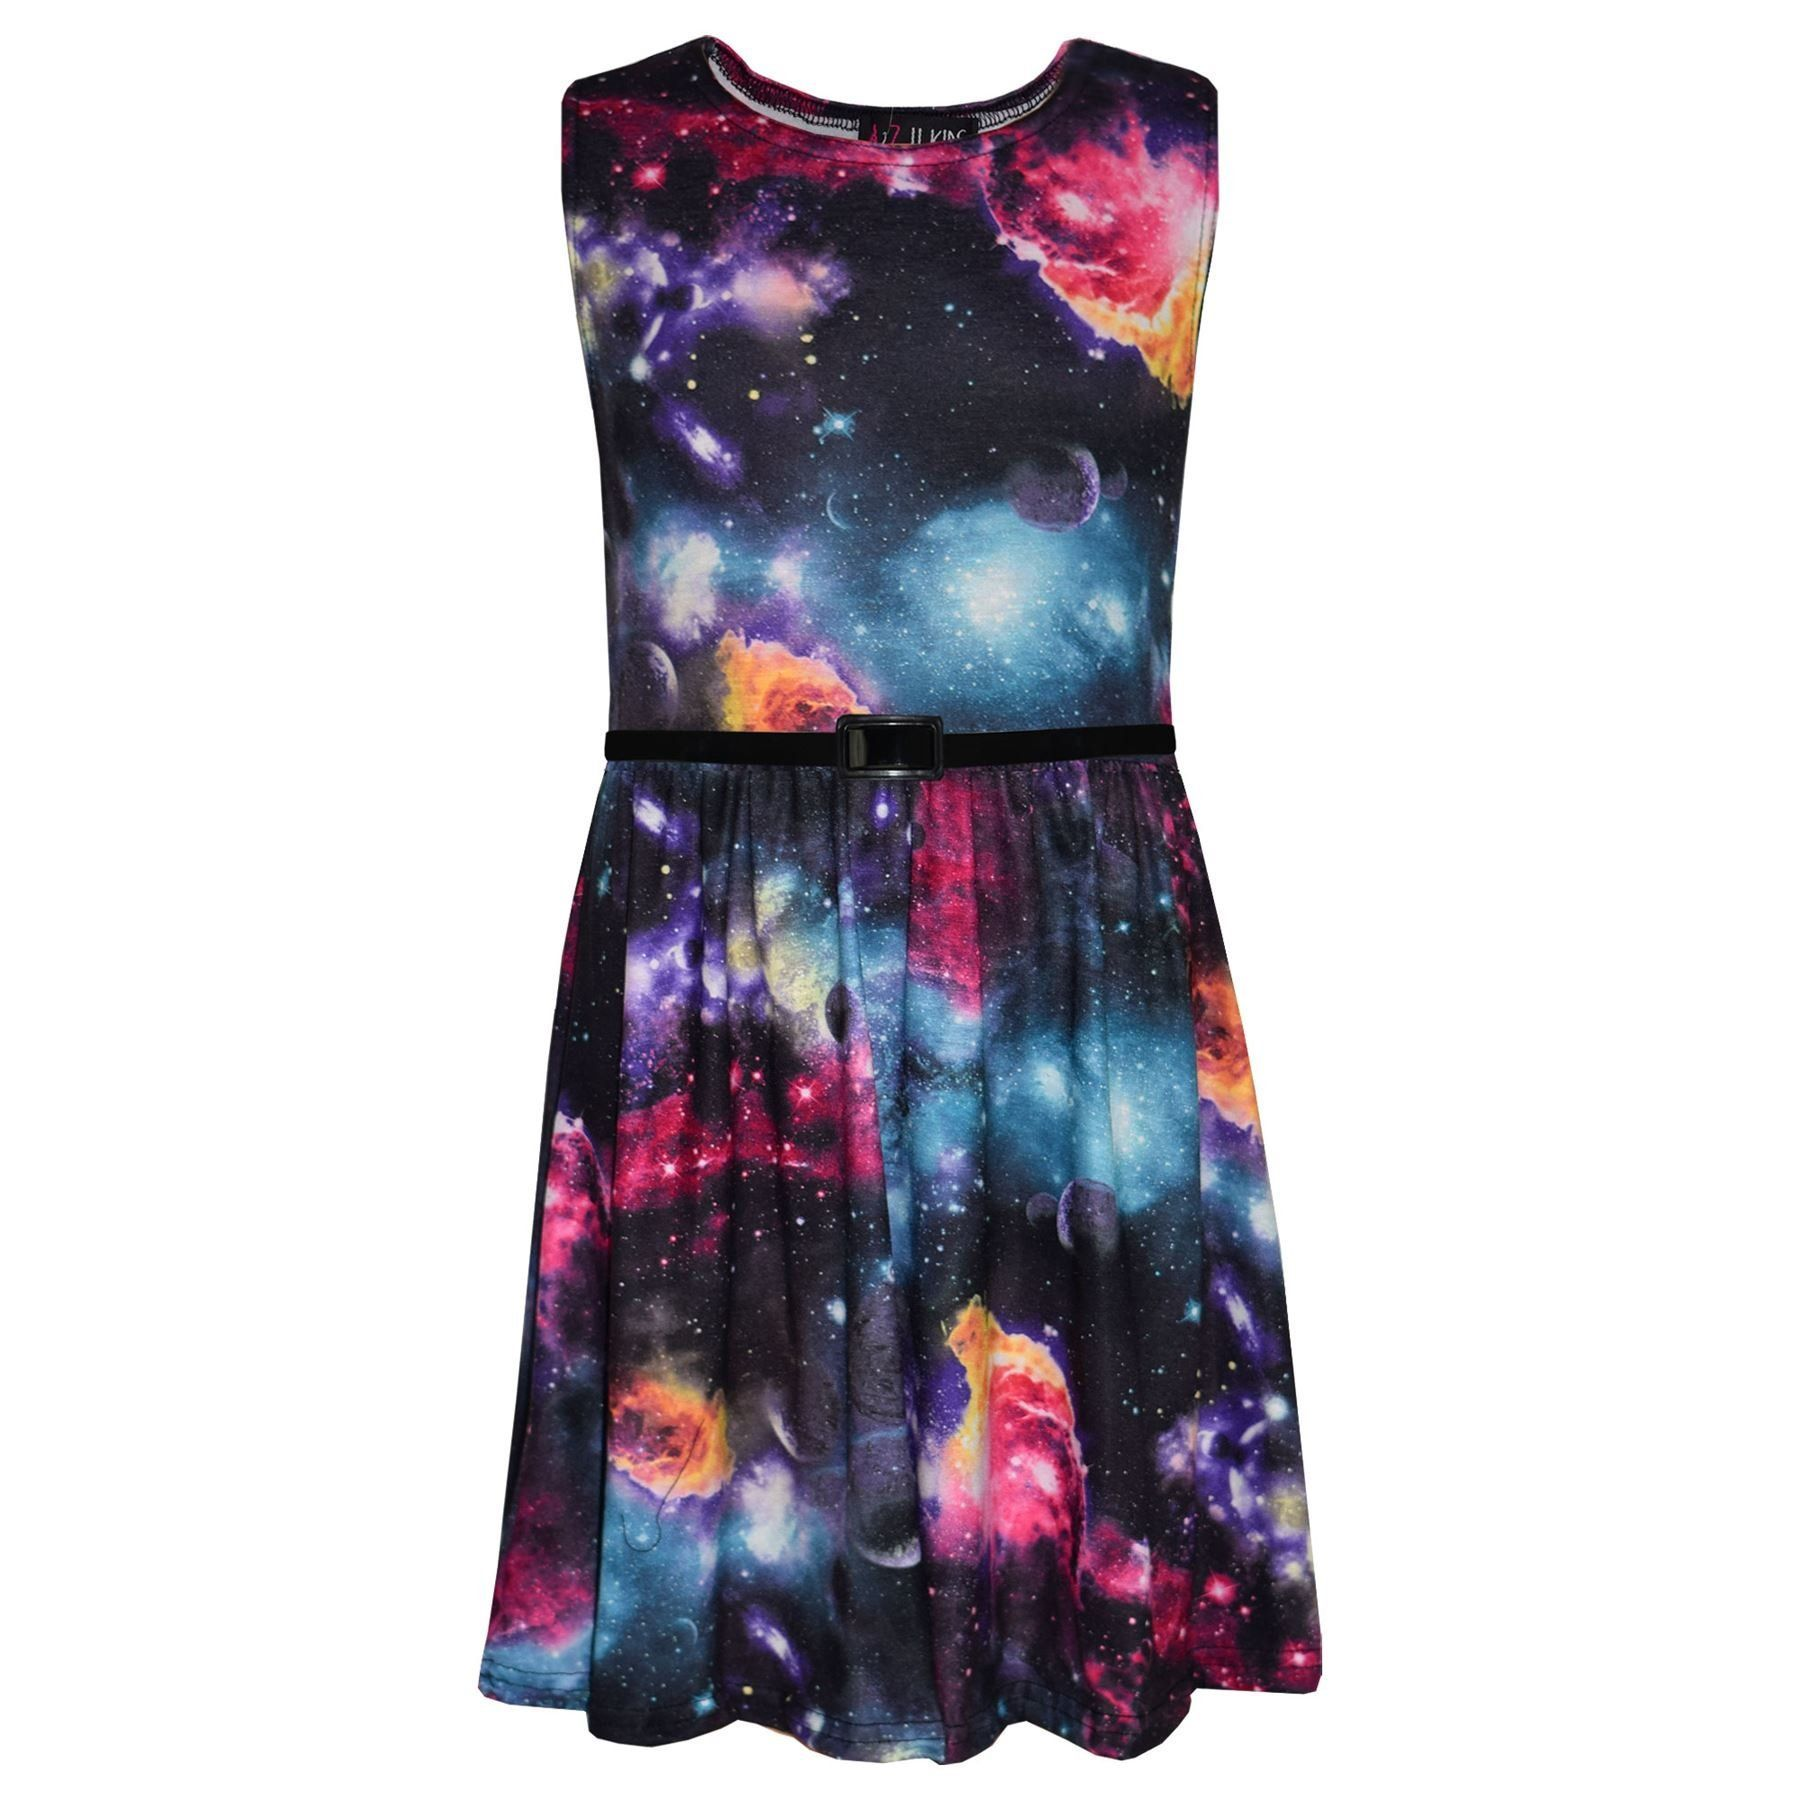 51dded61e520c Girls Skater Dress Kids Cosmic Print Summer Party Fashion Dresses Age 7-13  Years.